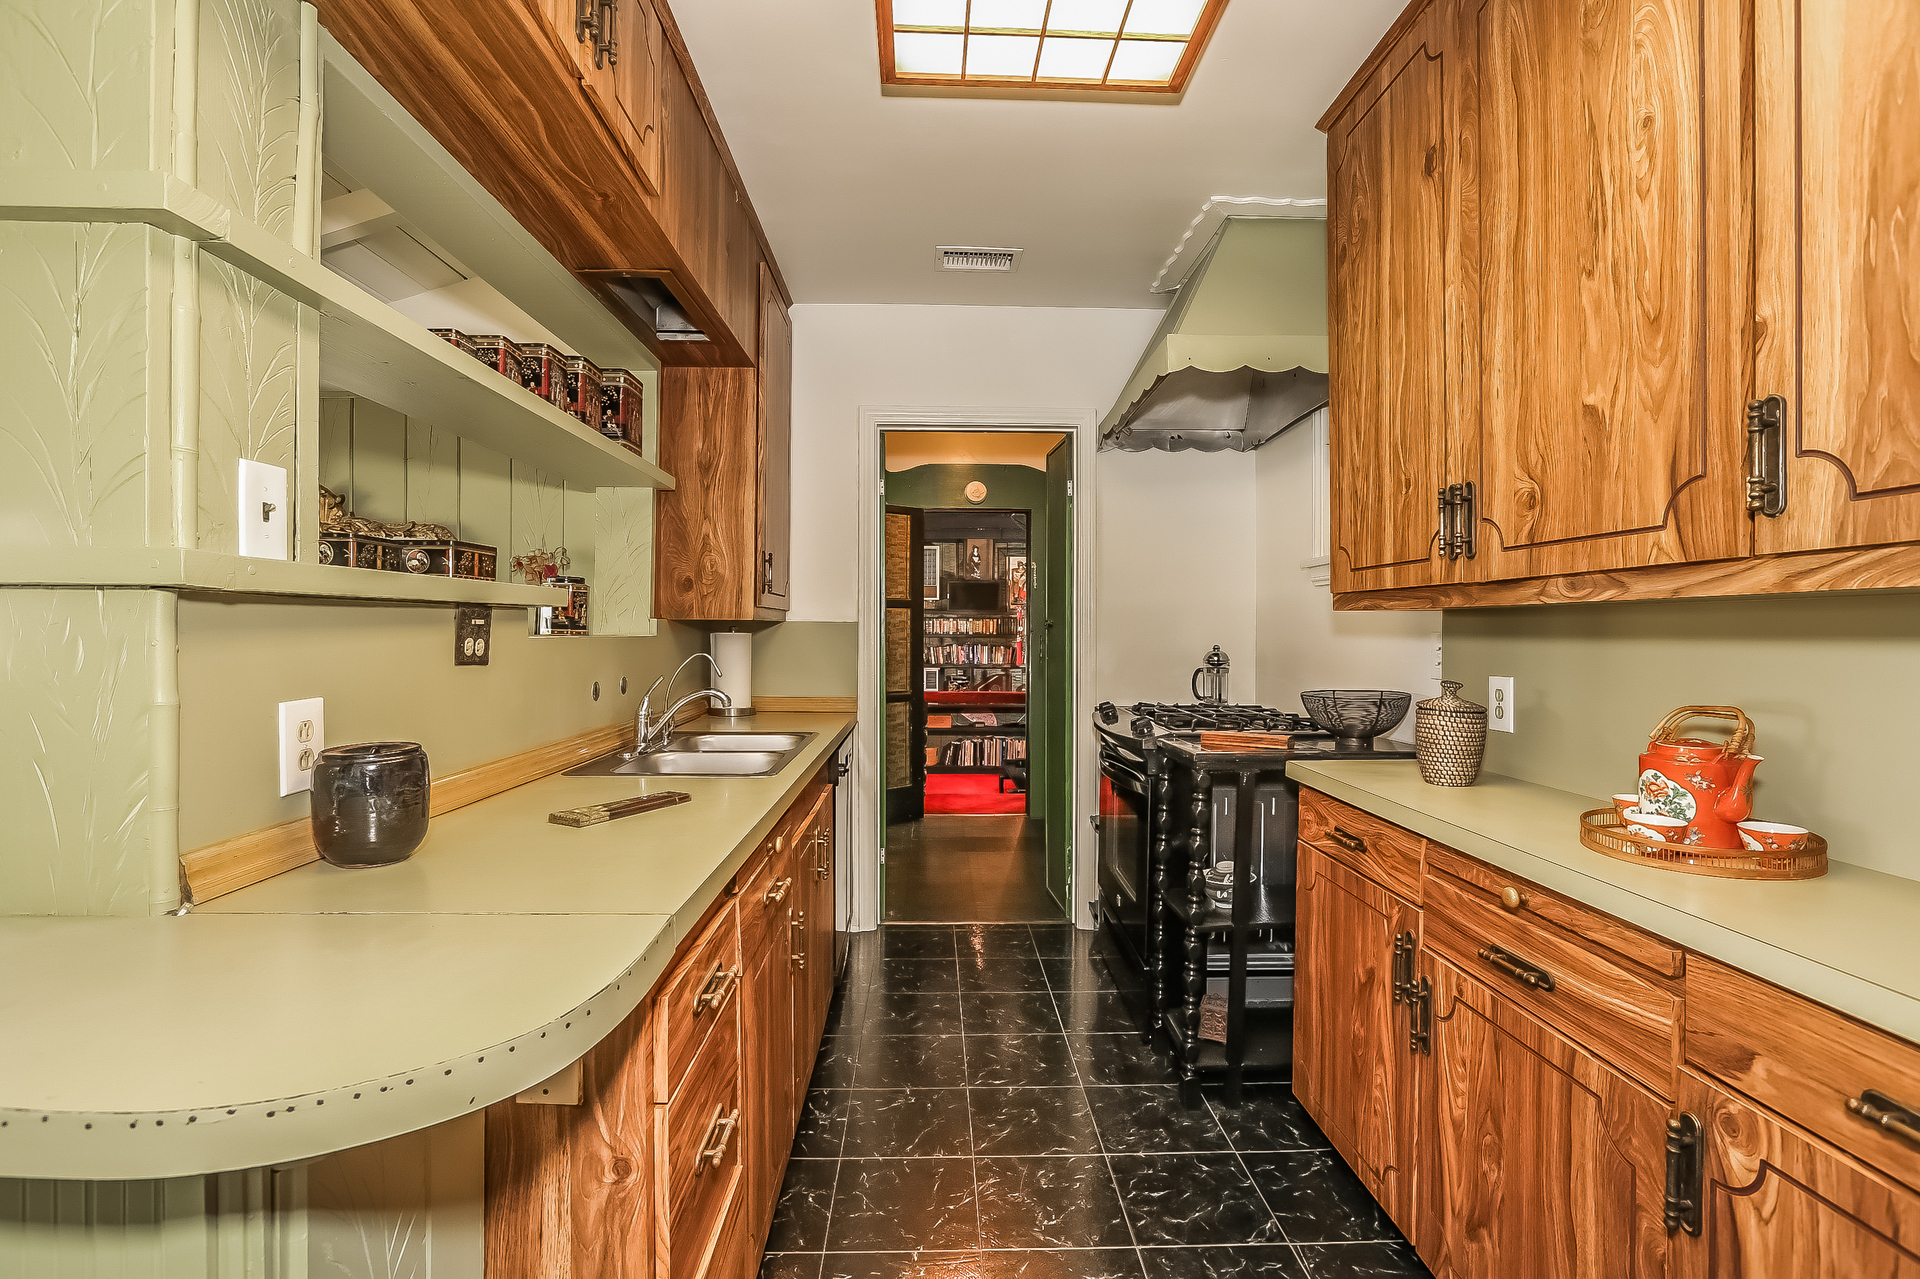 013-Kitchen-755798-medium.jpg